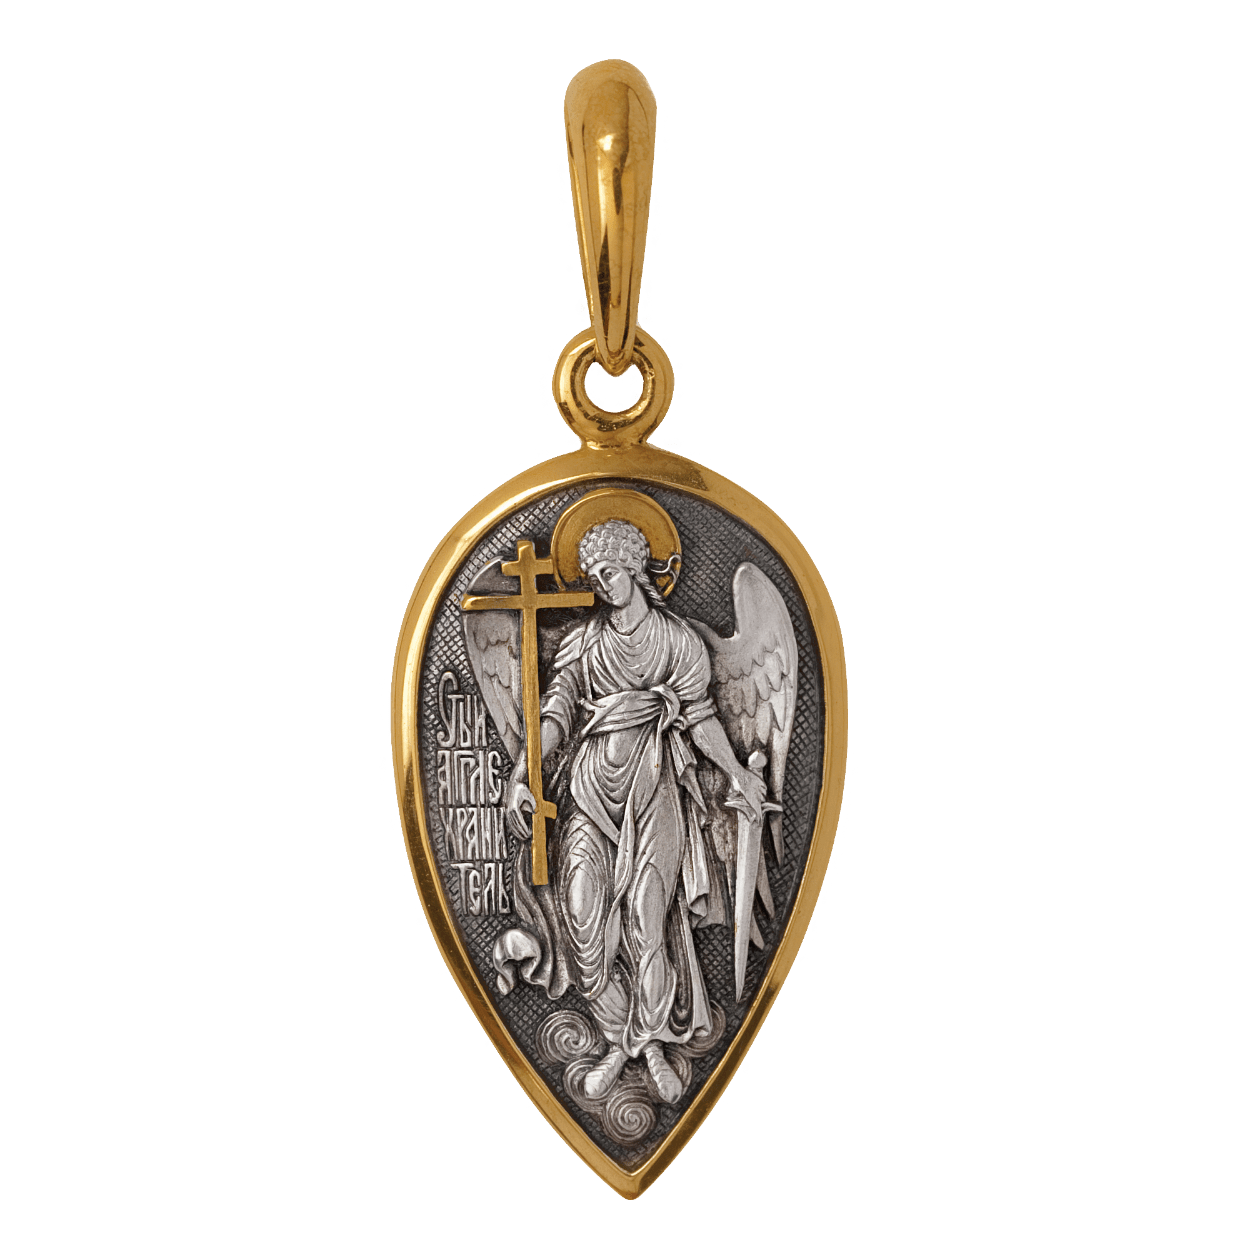 Russian-Orthodox-silver-icon-medal-pendant-GUARDIAN-ANGEL-Master-Jeweler-Fedorov